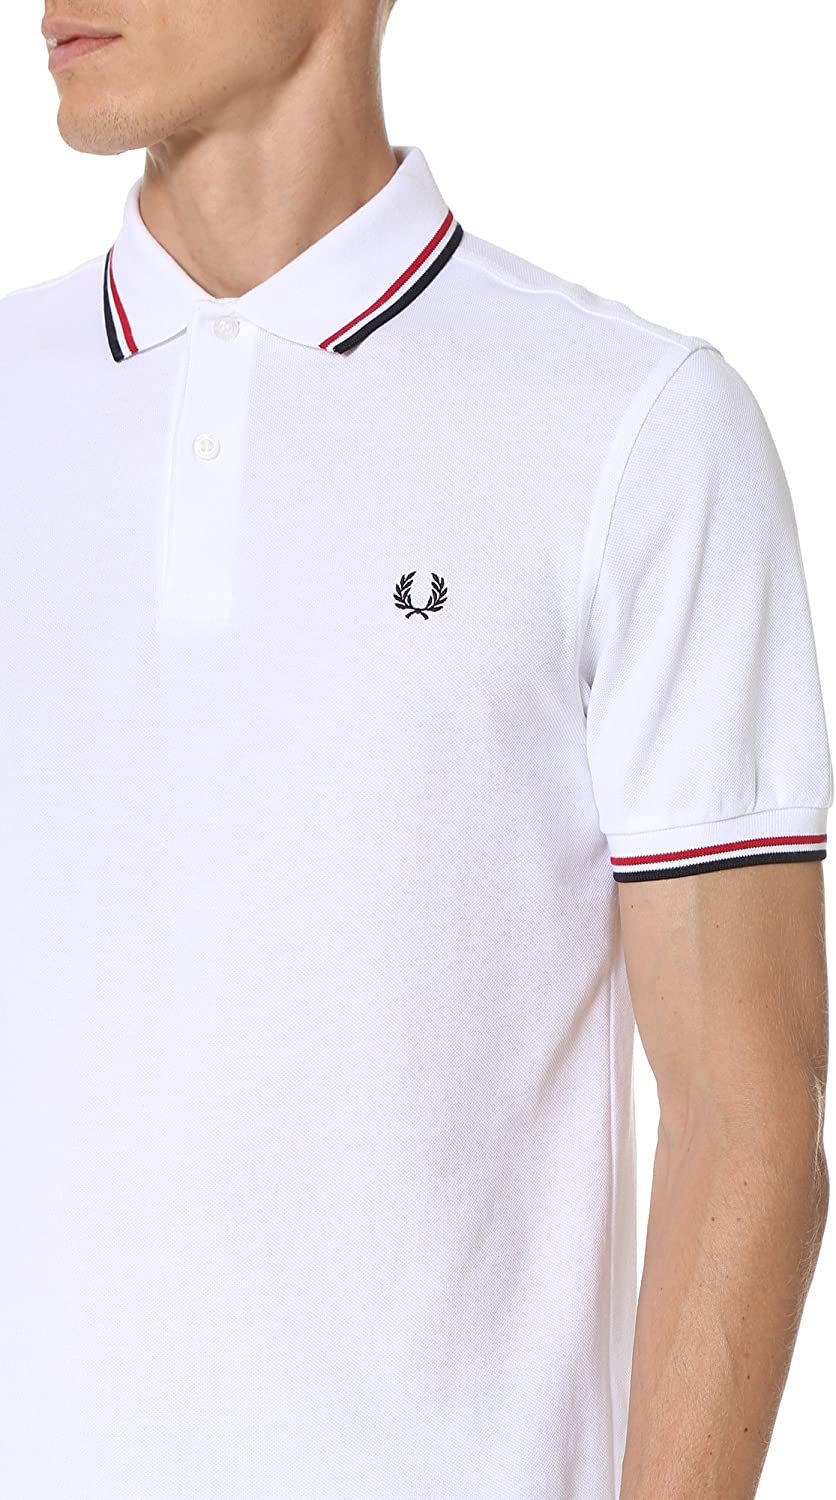 Fred Perry Men's Twin Tipped Polo Shirt White/Bright Red/Navy